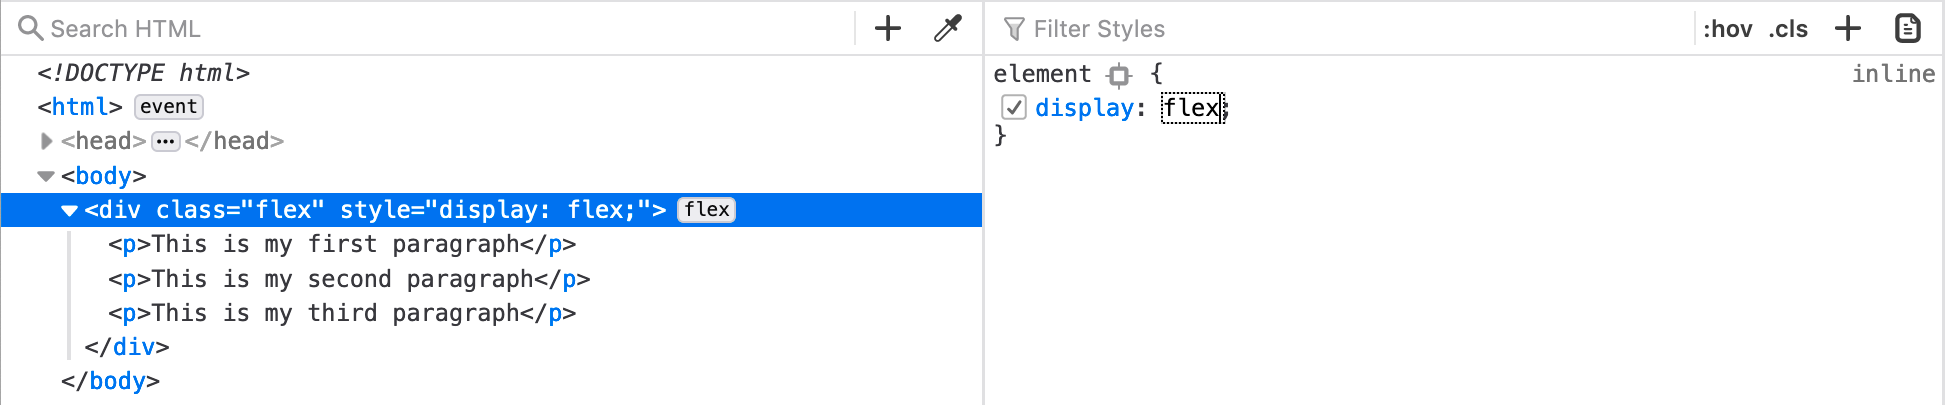 using the rules inspector in firefox to fix the problem with display: flex